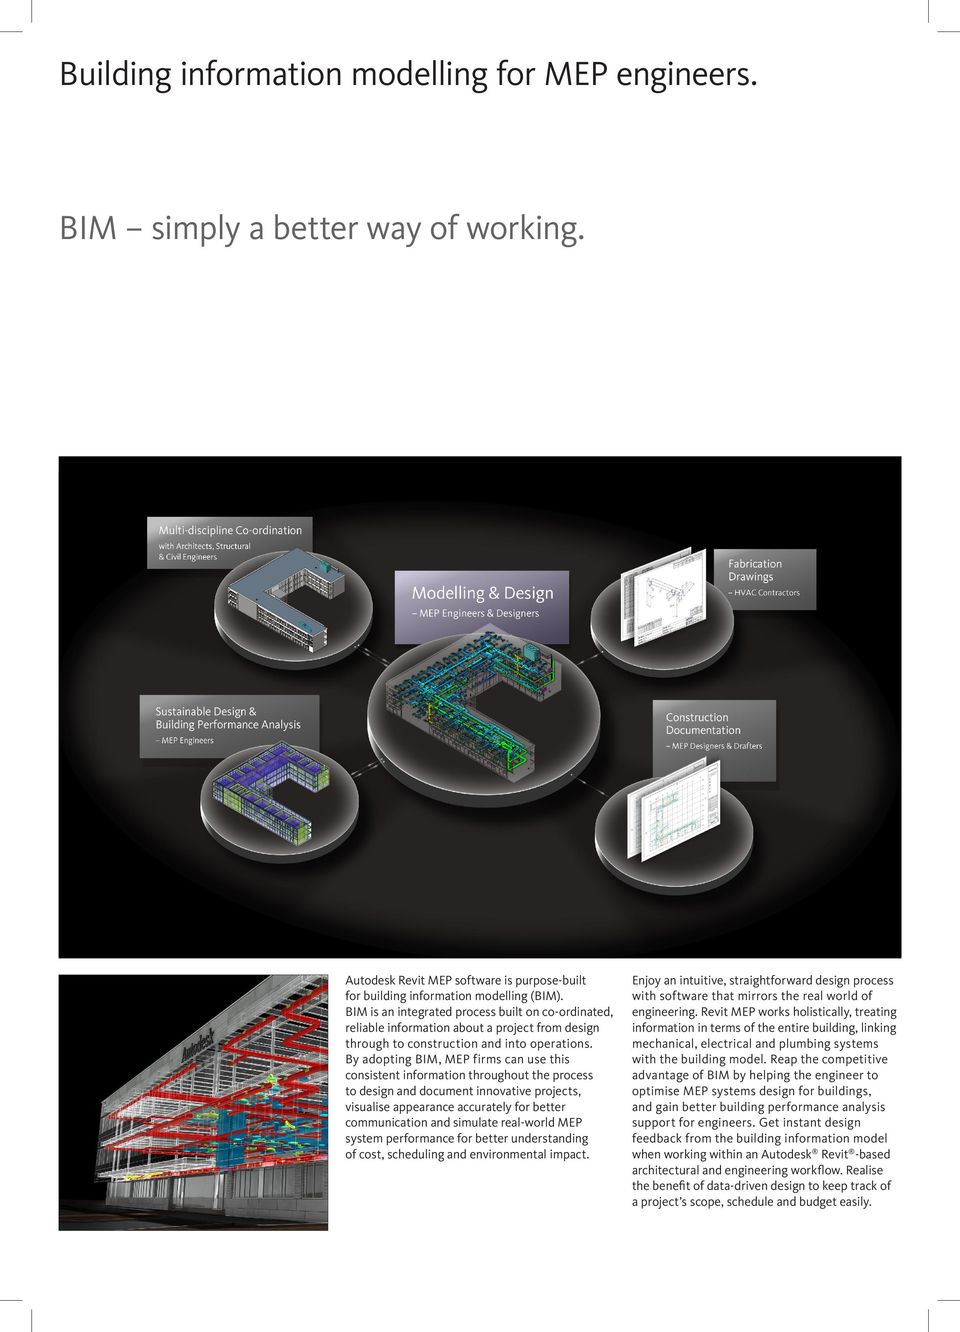 By adopting BIM, MEP firms can use this consistent information throughout the process to design and document innovative projects, visualise appearance accurately for better communication and simulate